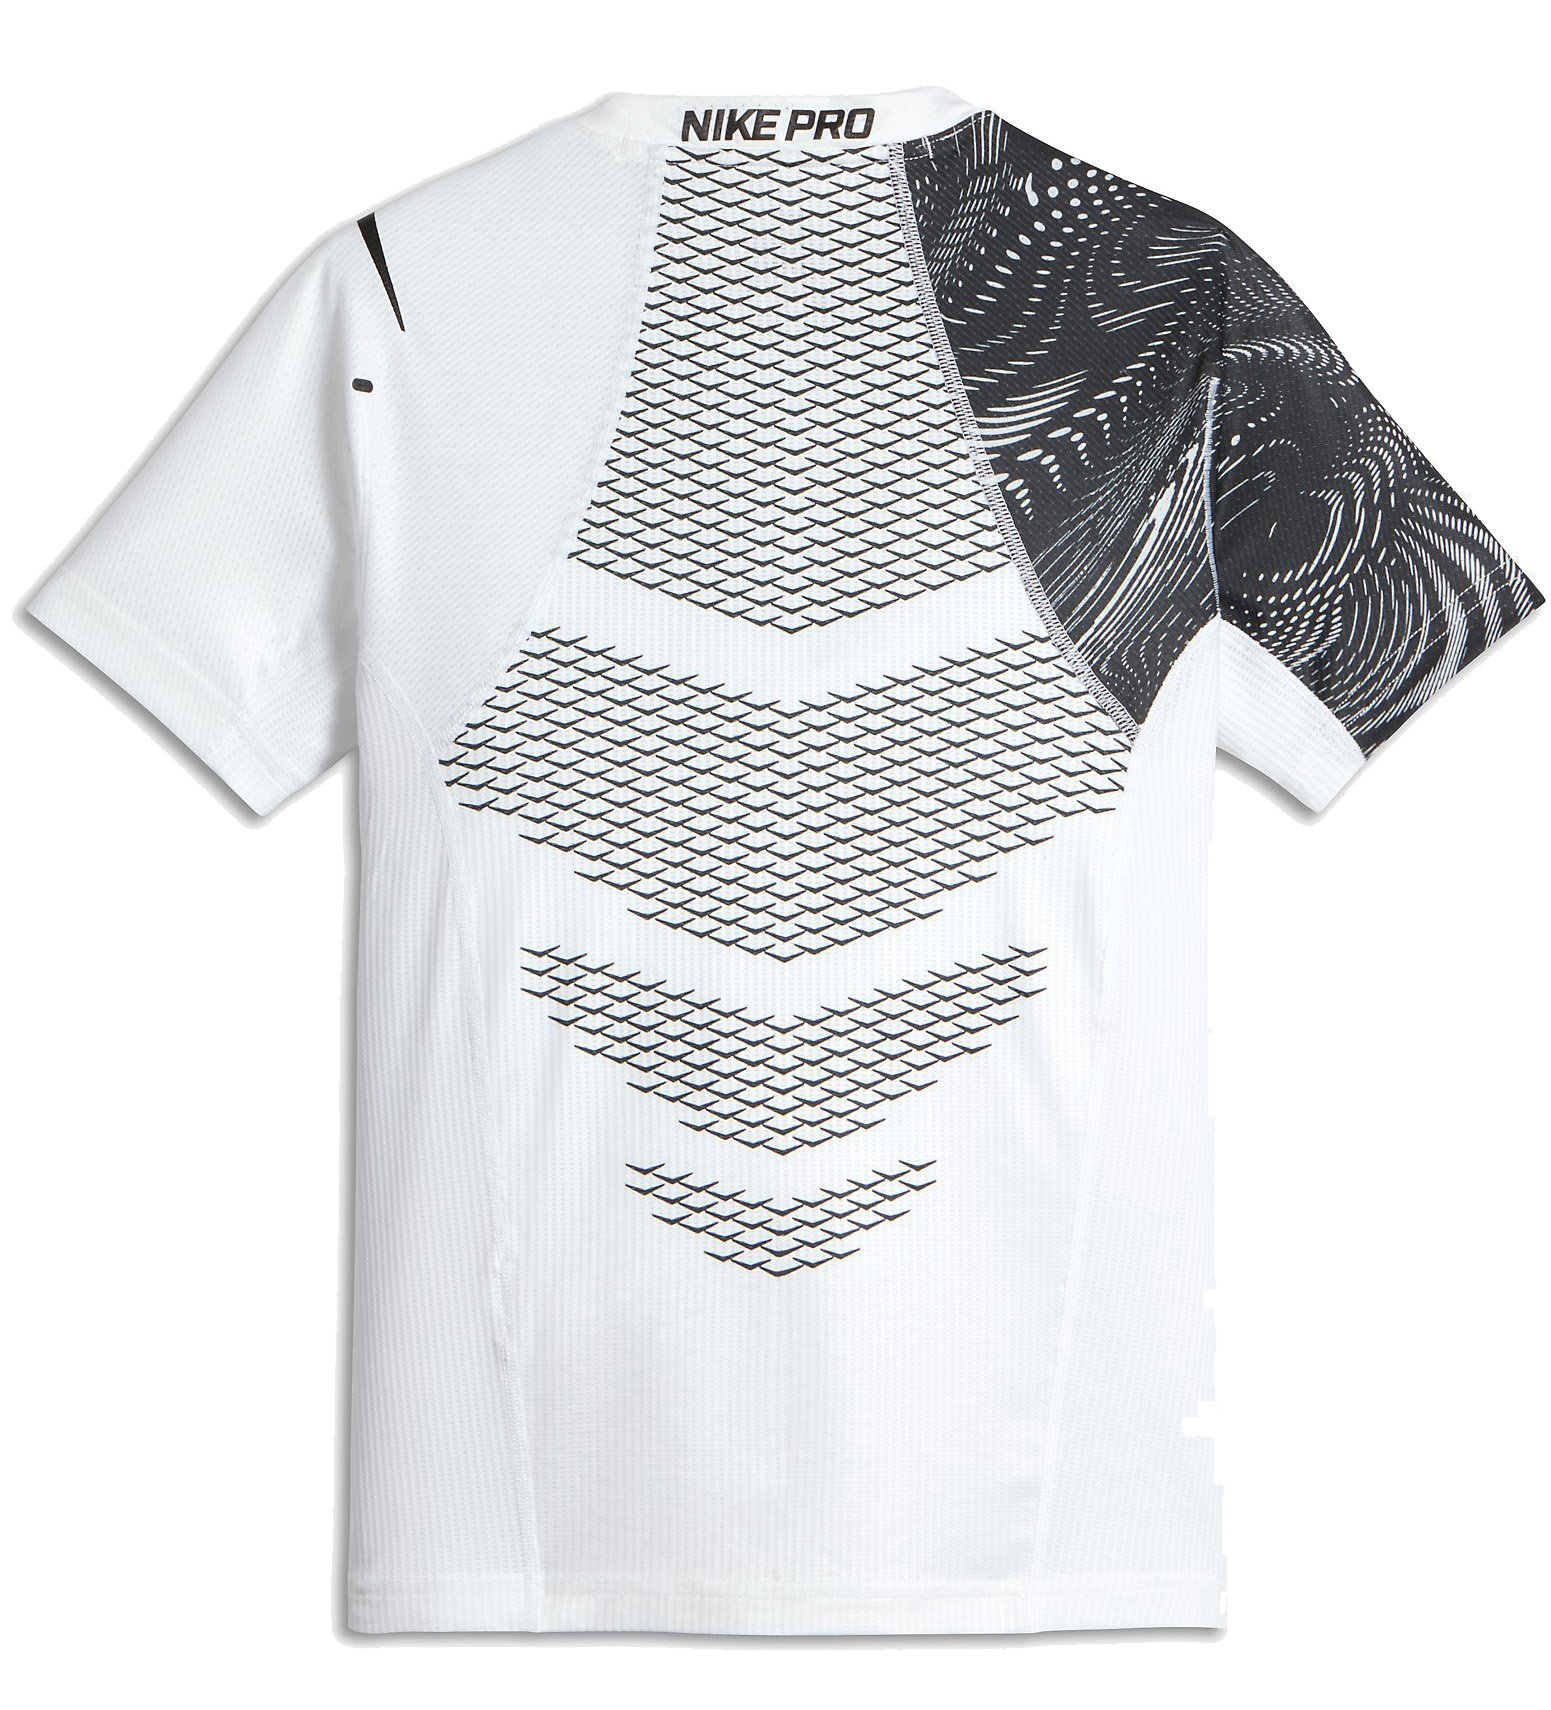 Compression t shirt nike b np hprcl top ss fttd aop for T shirt design nike